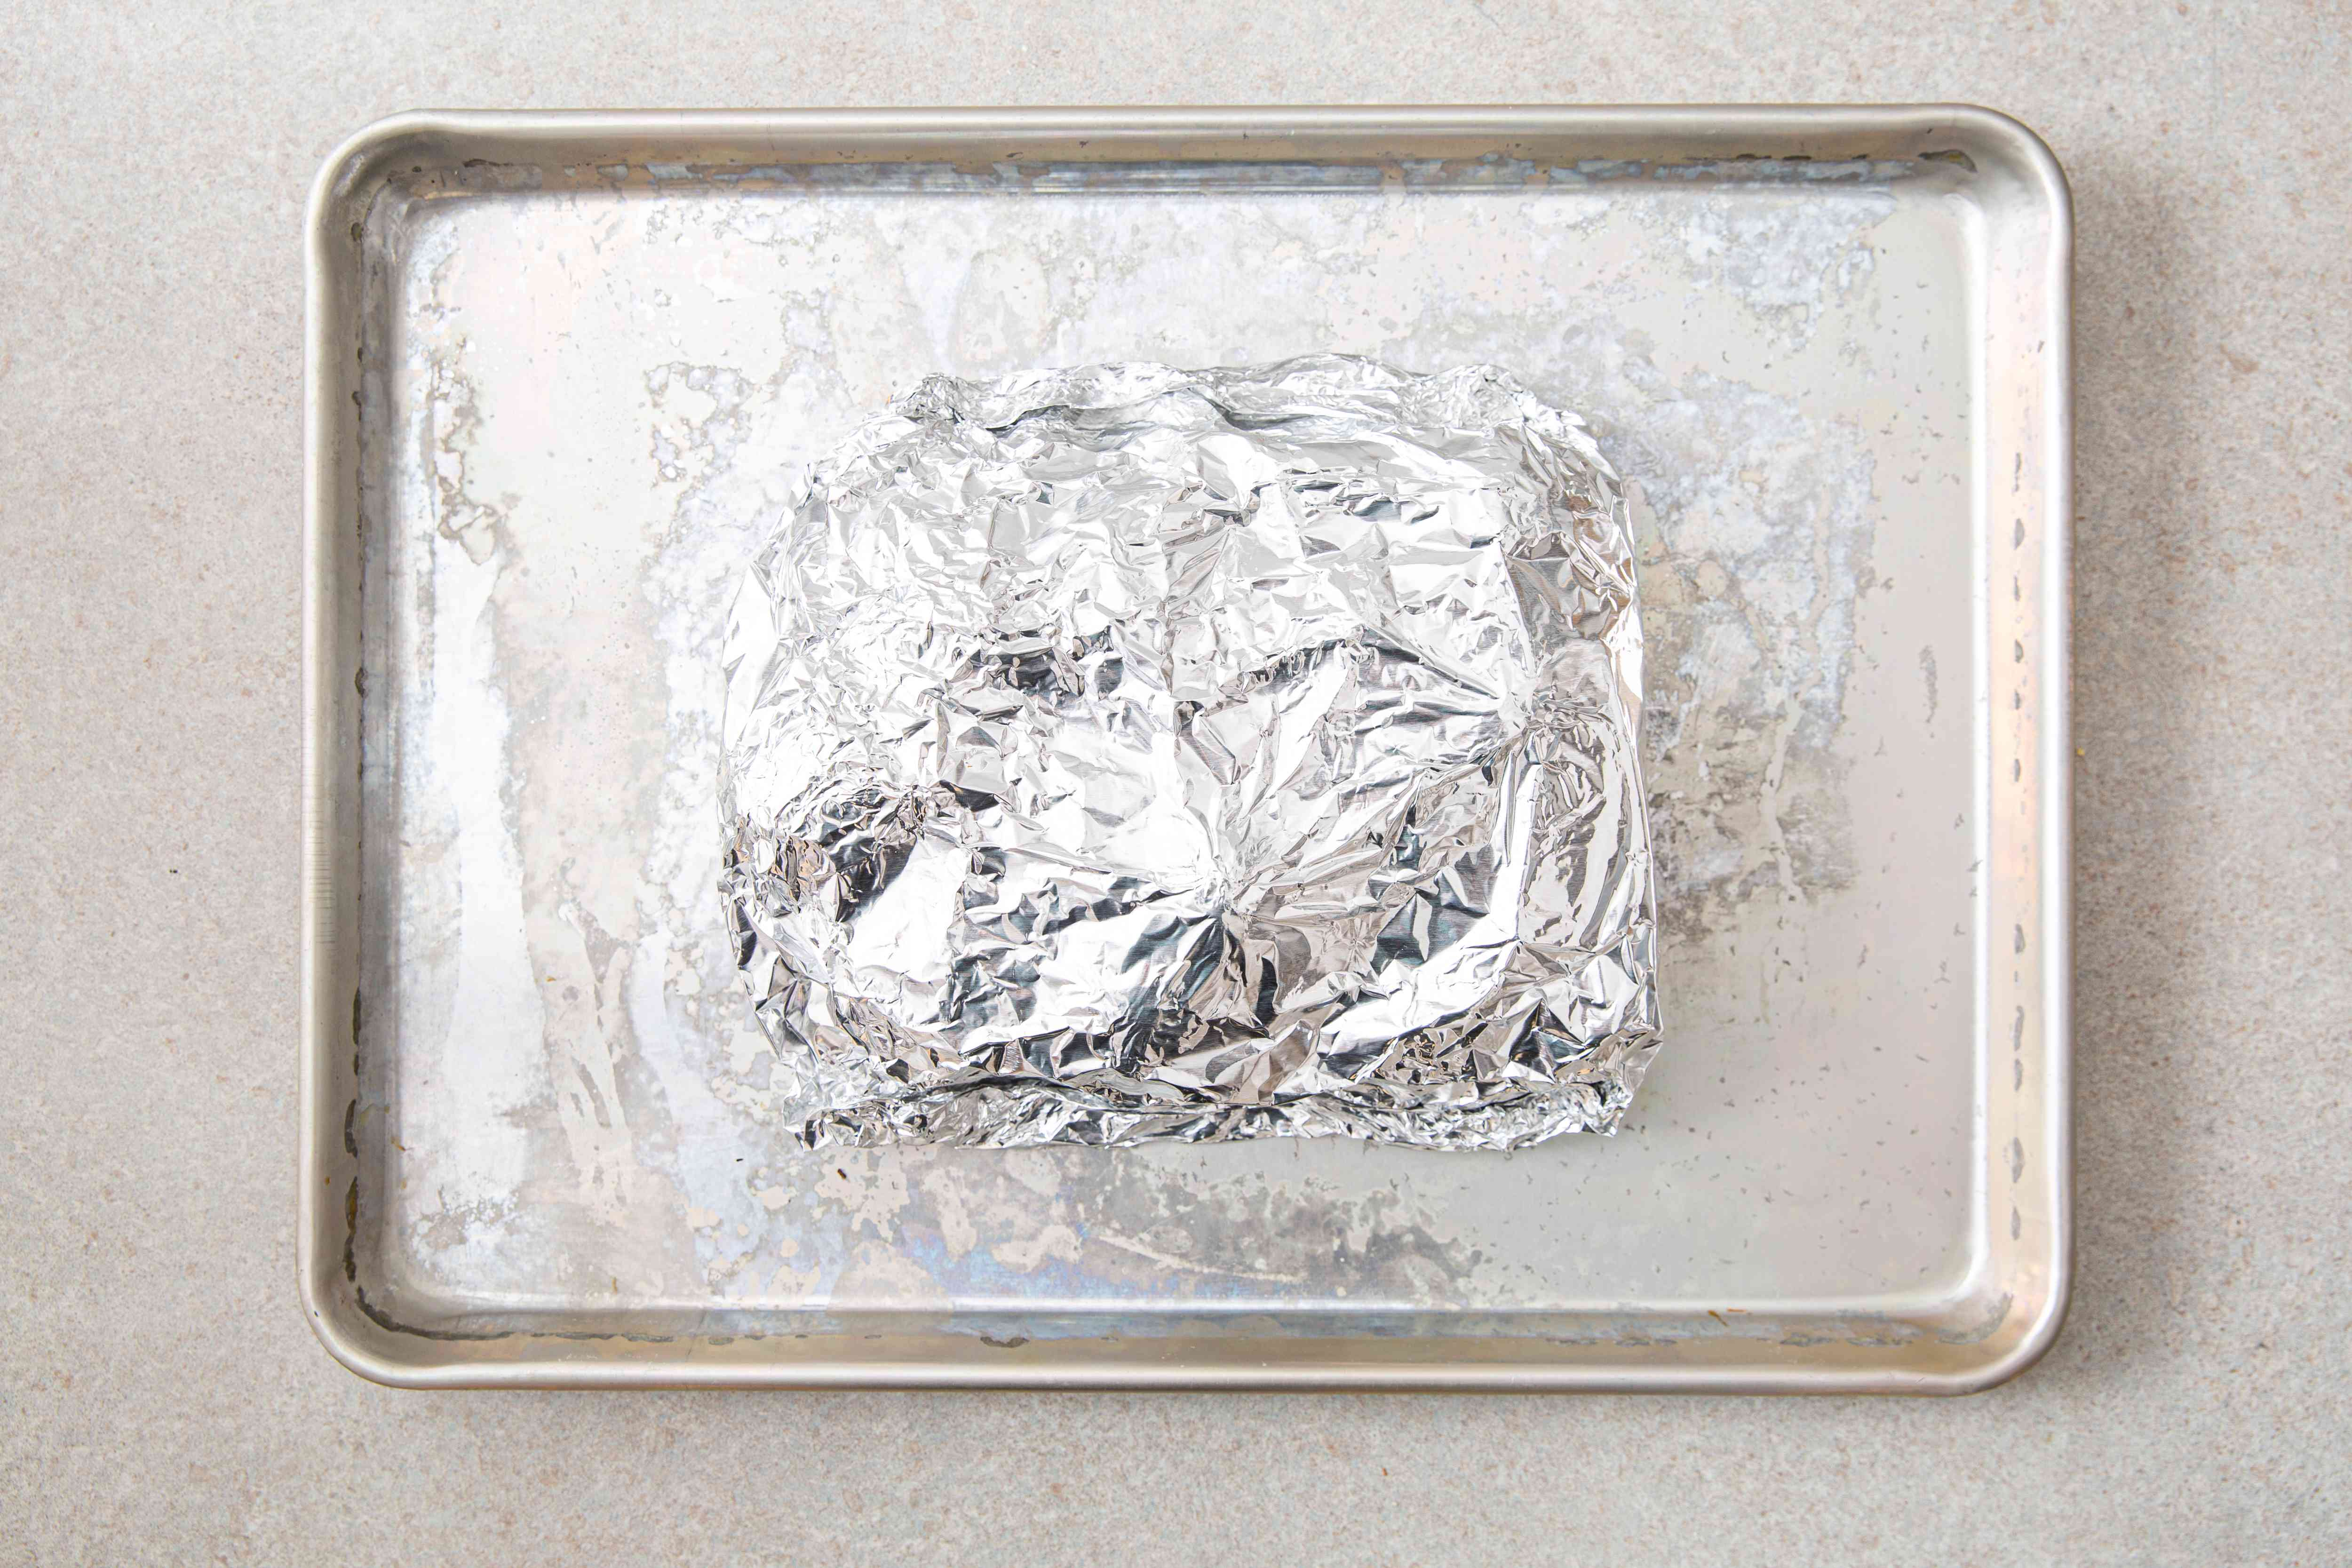 Place package on shallow baking pan